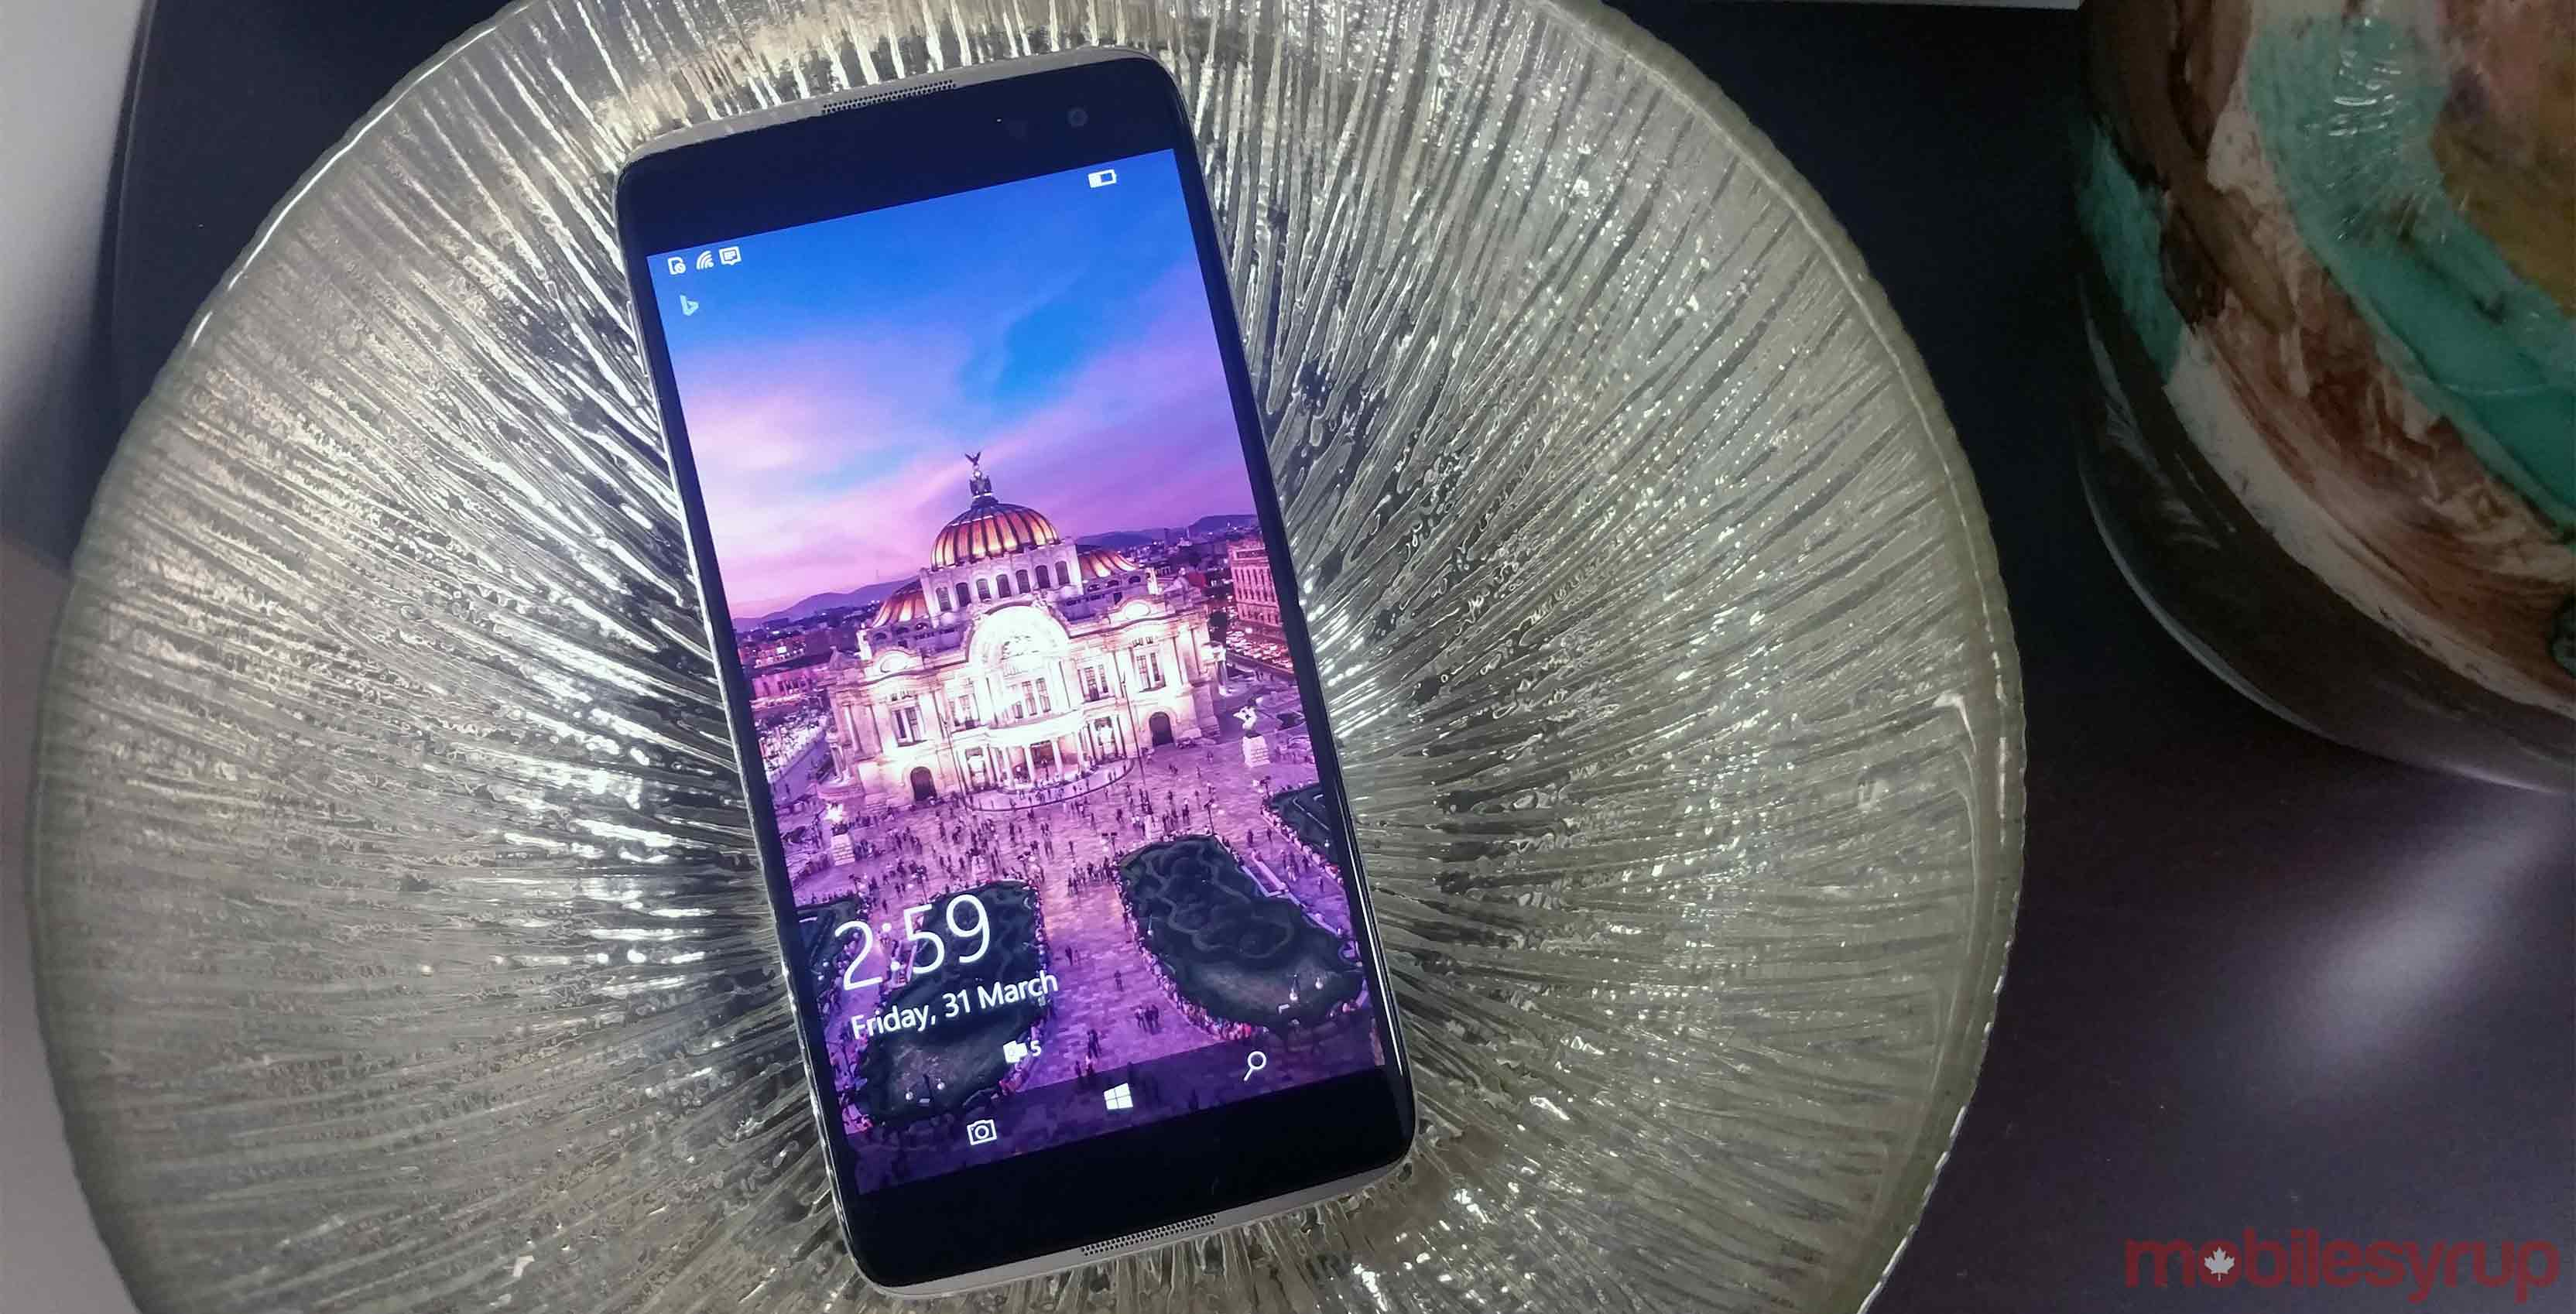 Alcatel Idol 4S Windows 10 Mobile Review: The best Windows